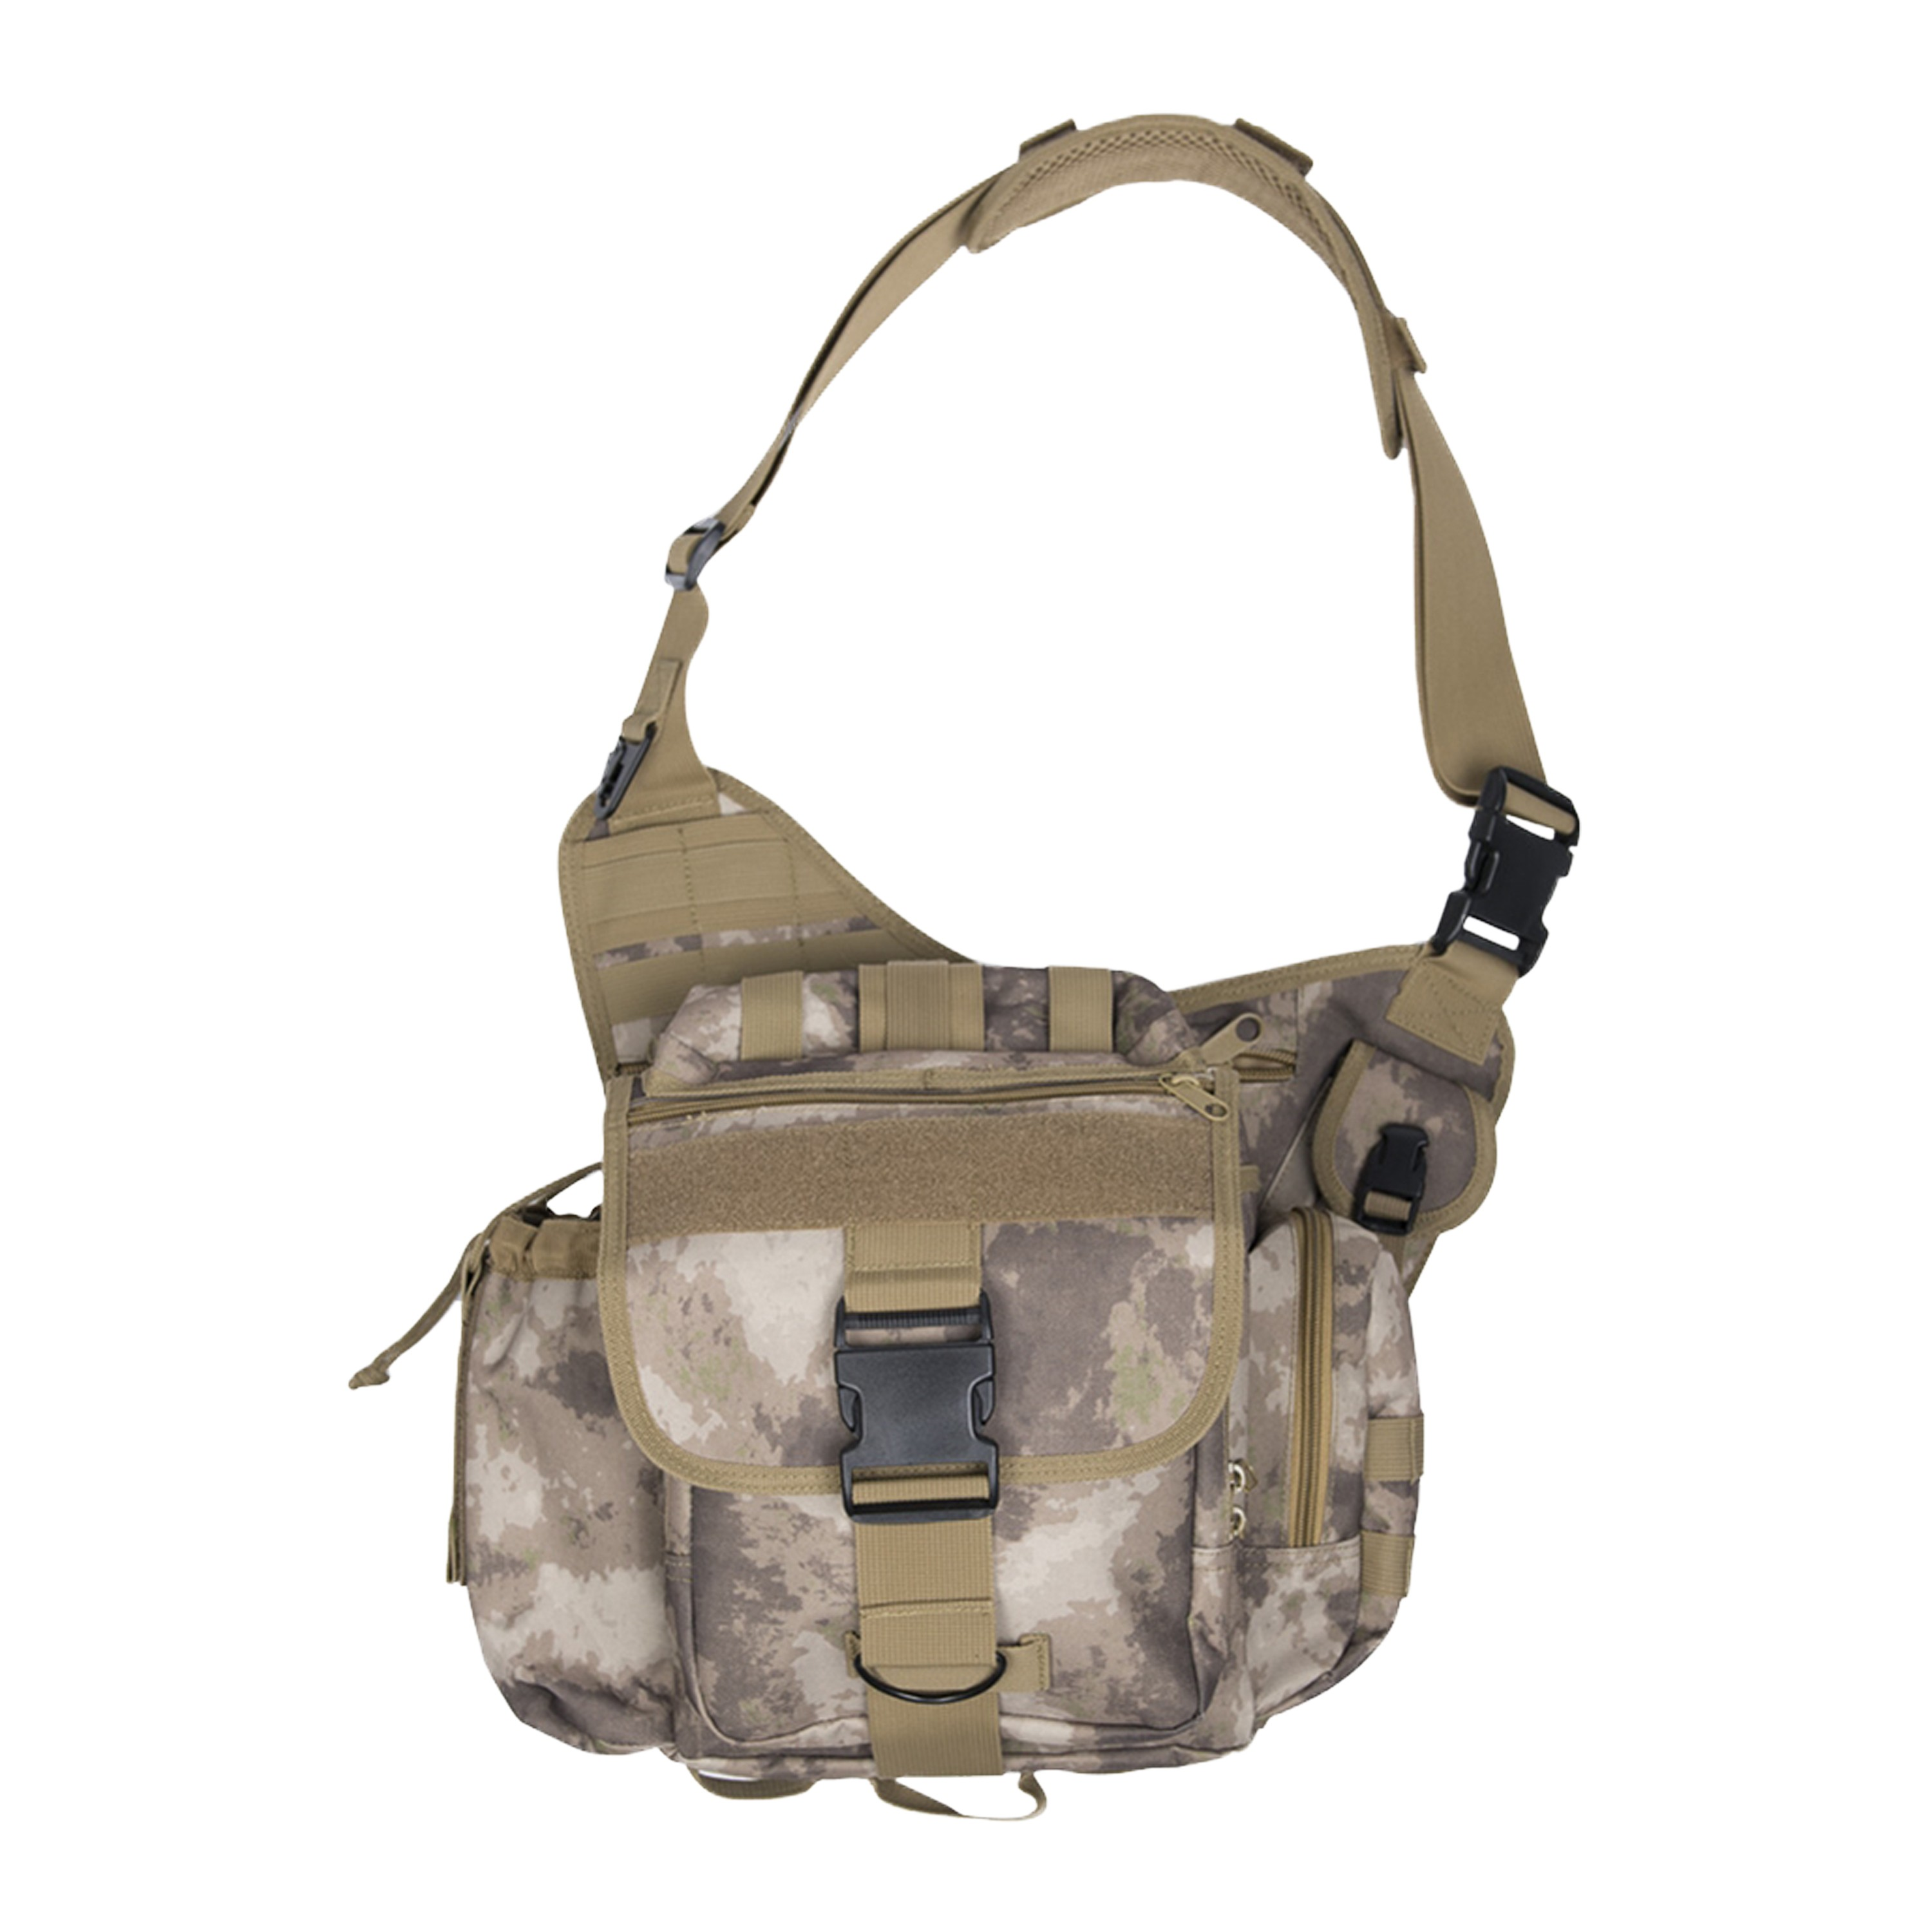 Tasche Single Strap Side Pack MIL-TACS AU